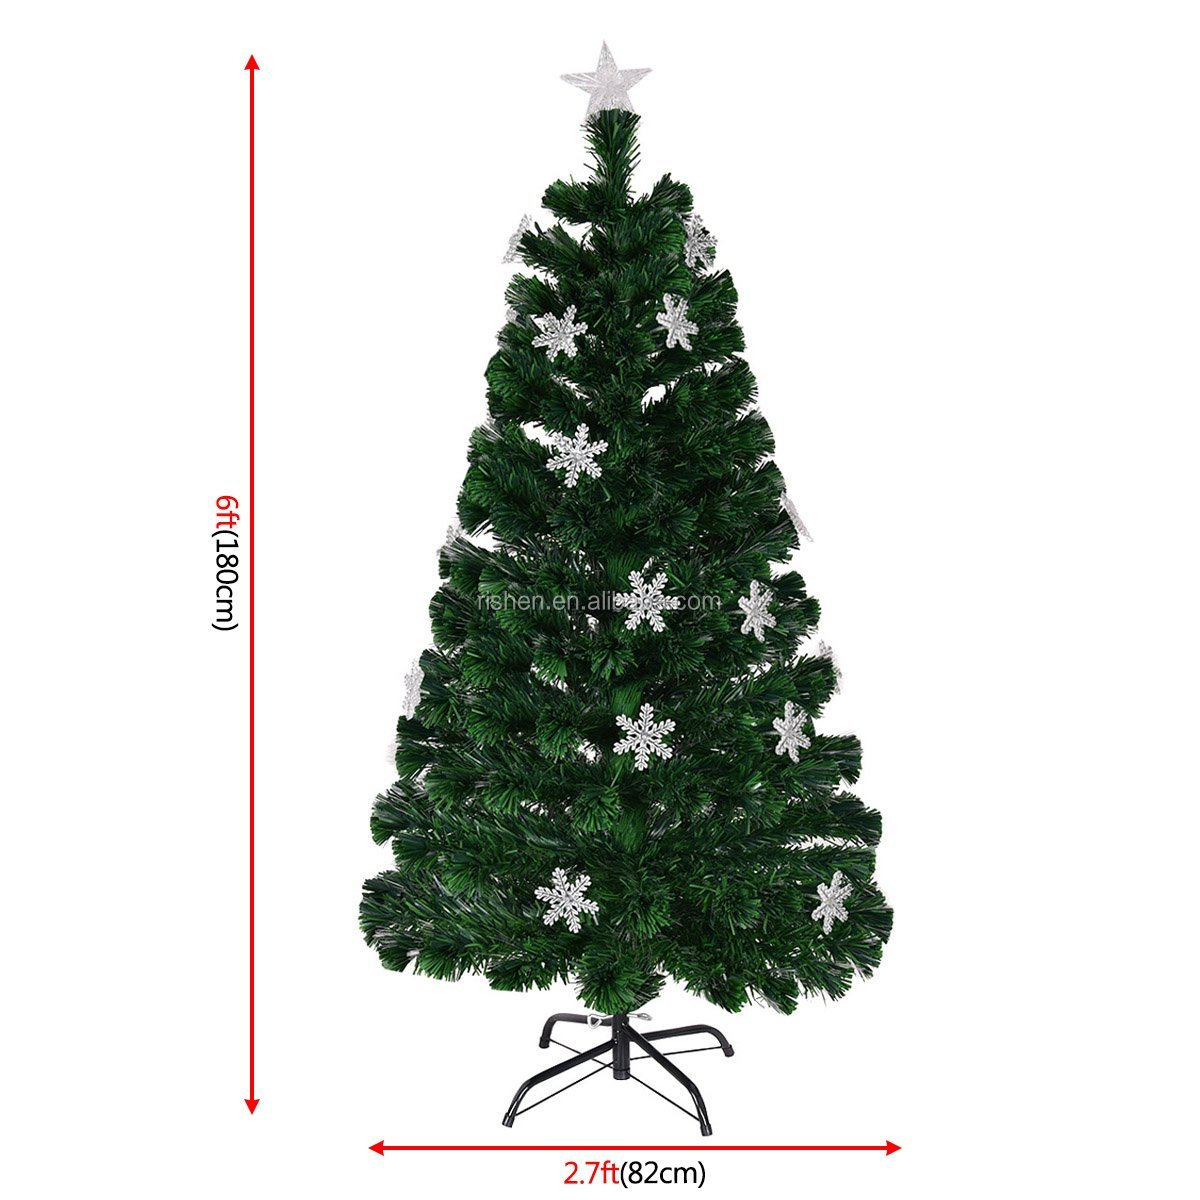 Artificial Christmas Tree With Lights.4ft Green Fibre Optic Artificial Christmas Tree Xmas Colourful Led Scattered Light Tree With Led Snowflake Ornaments Buy 4ft Green Fibre Optic